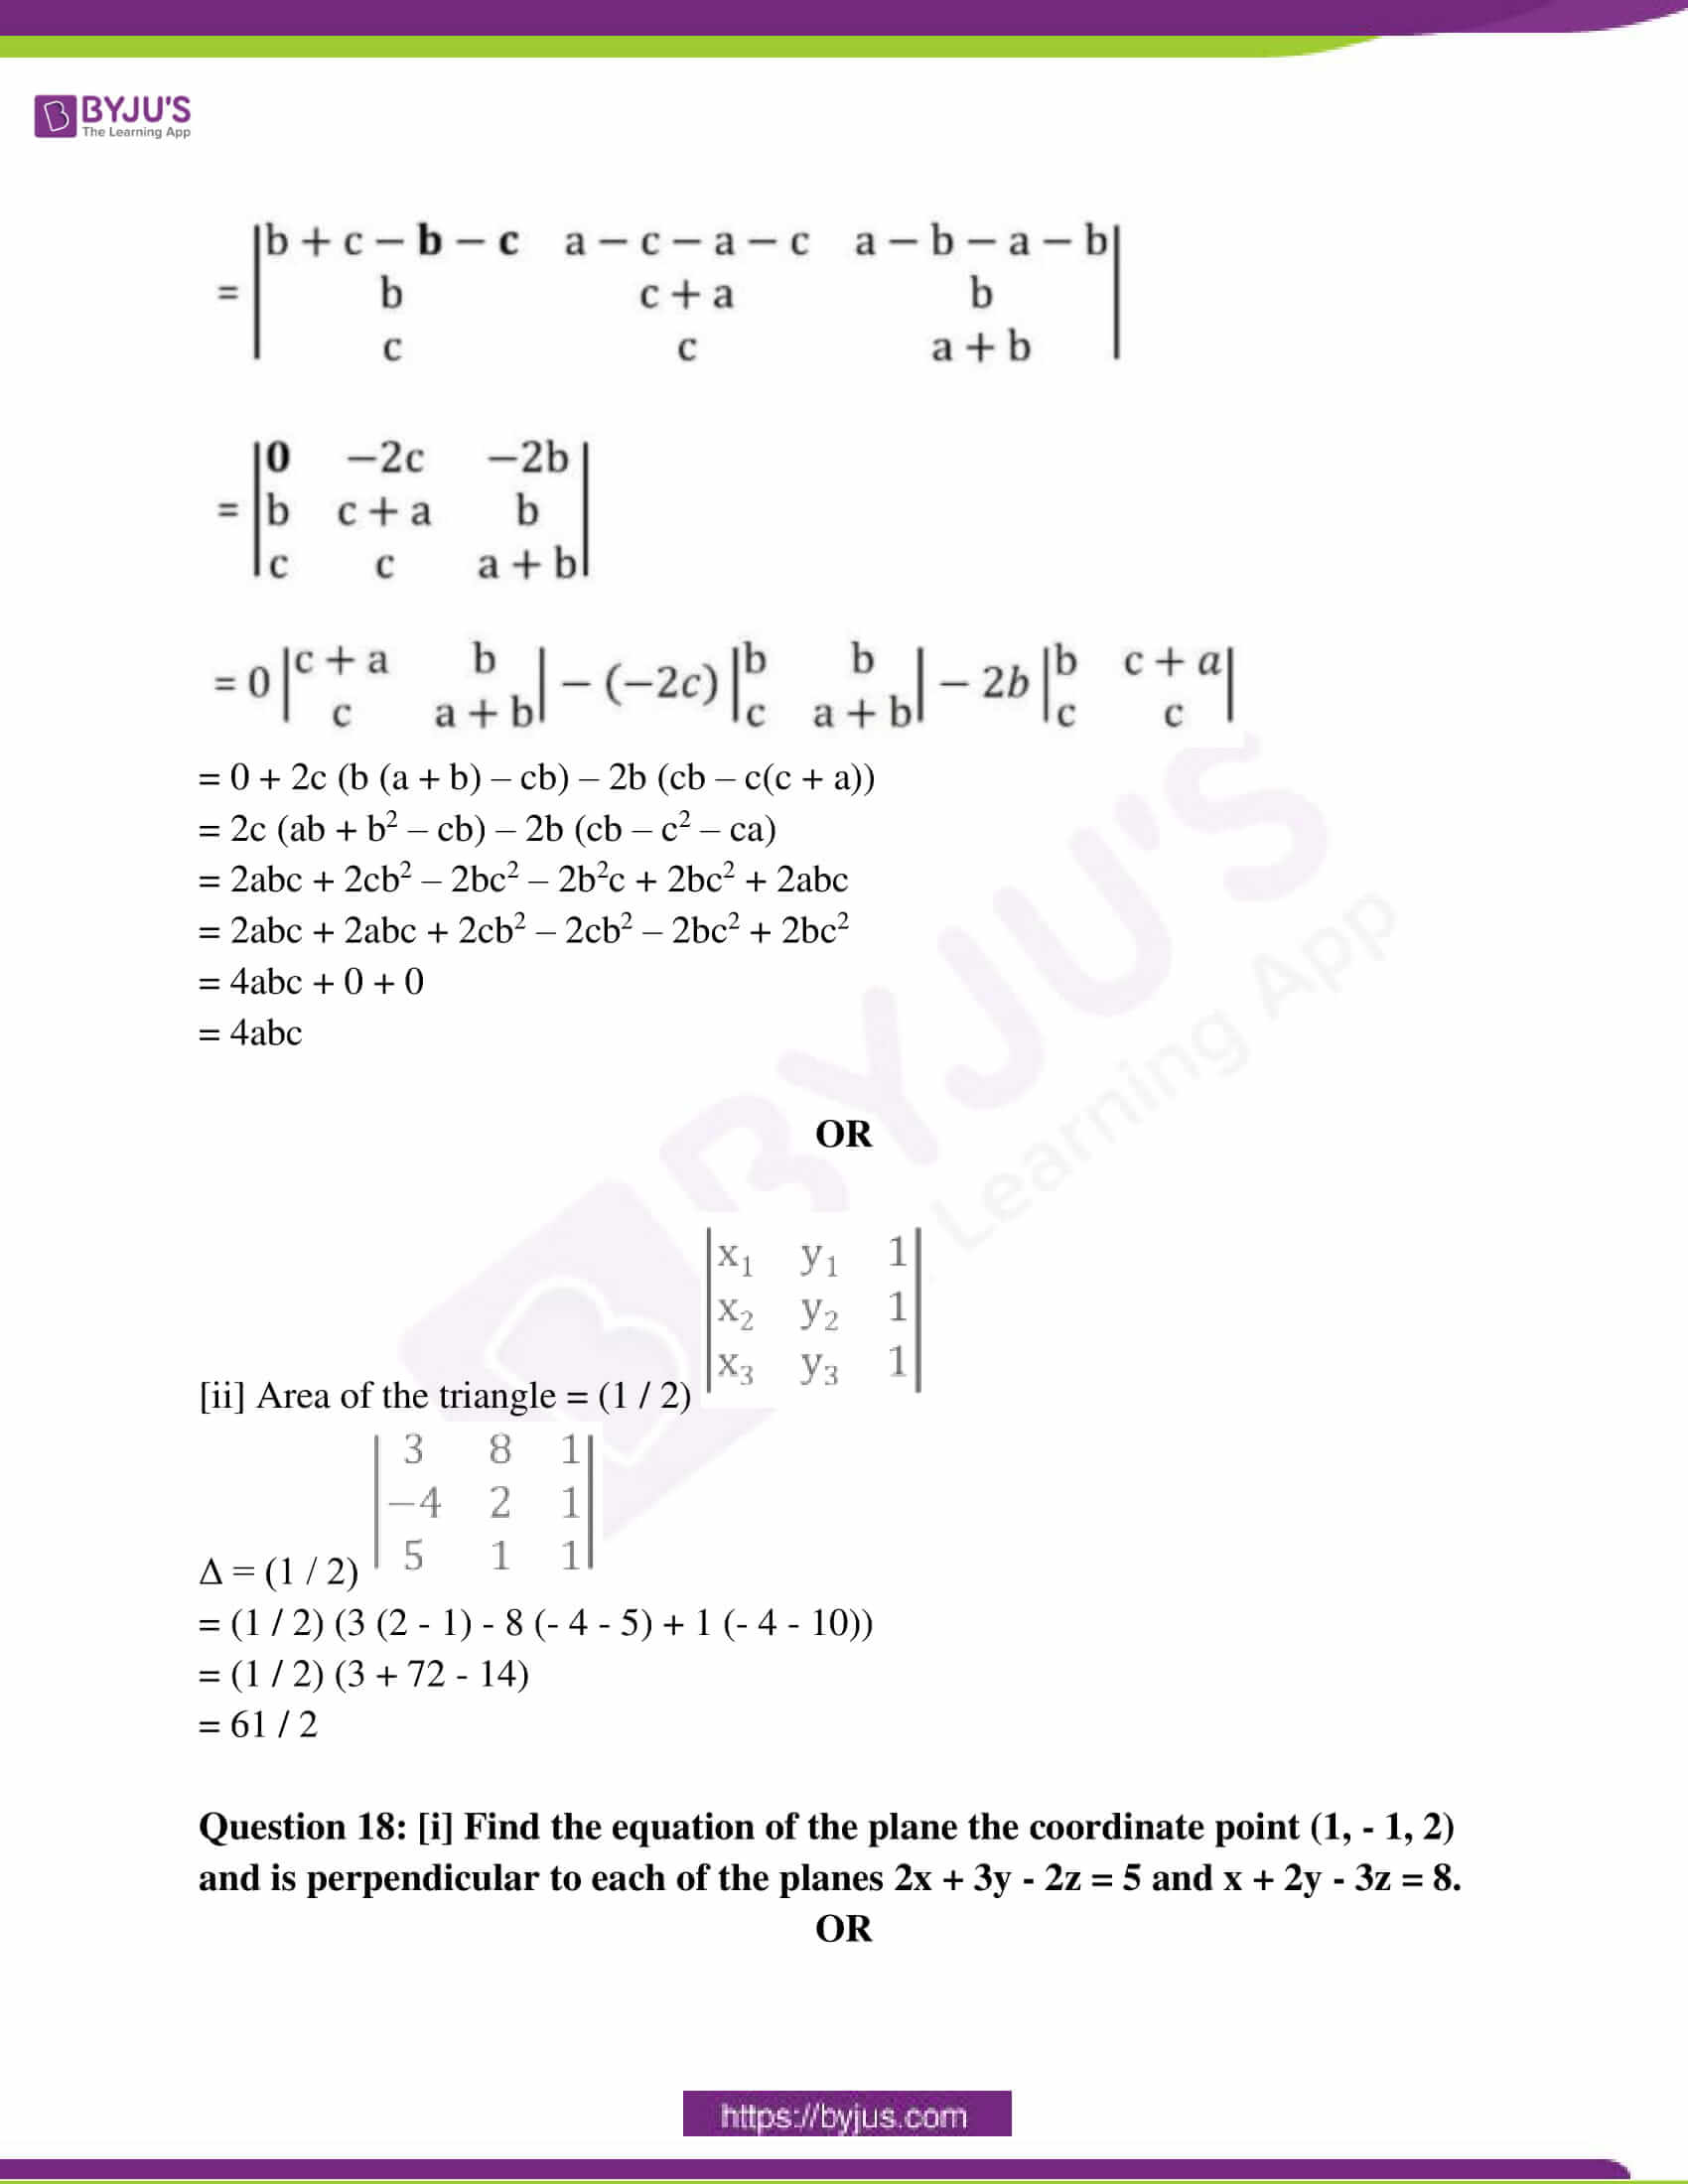 mp board class 12 questions and answers maths 2019 19